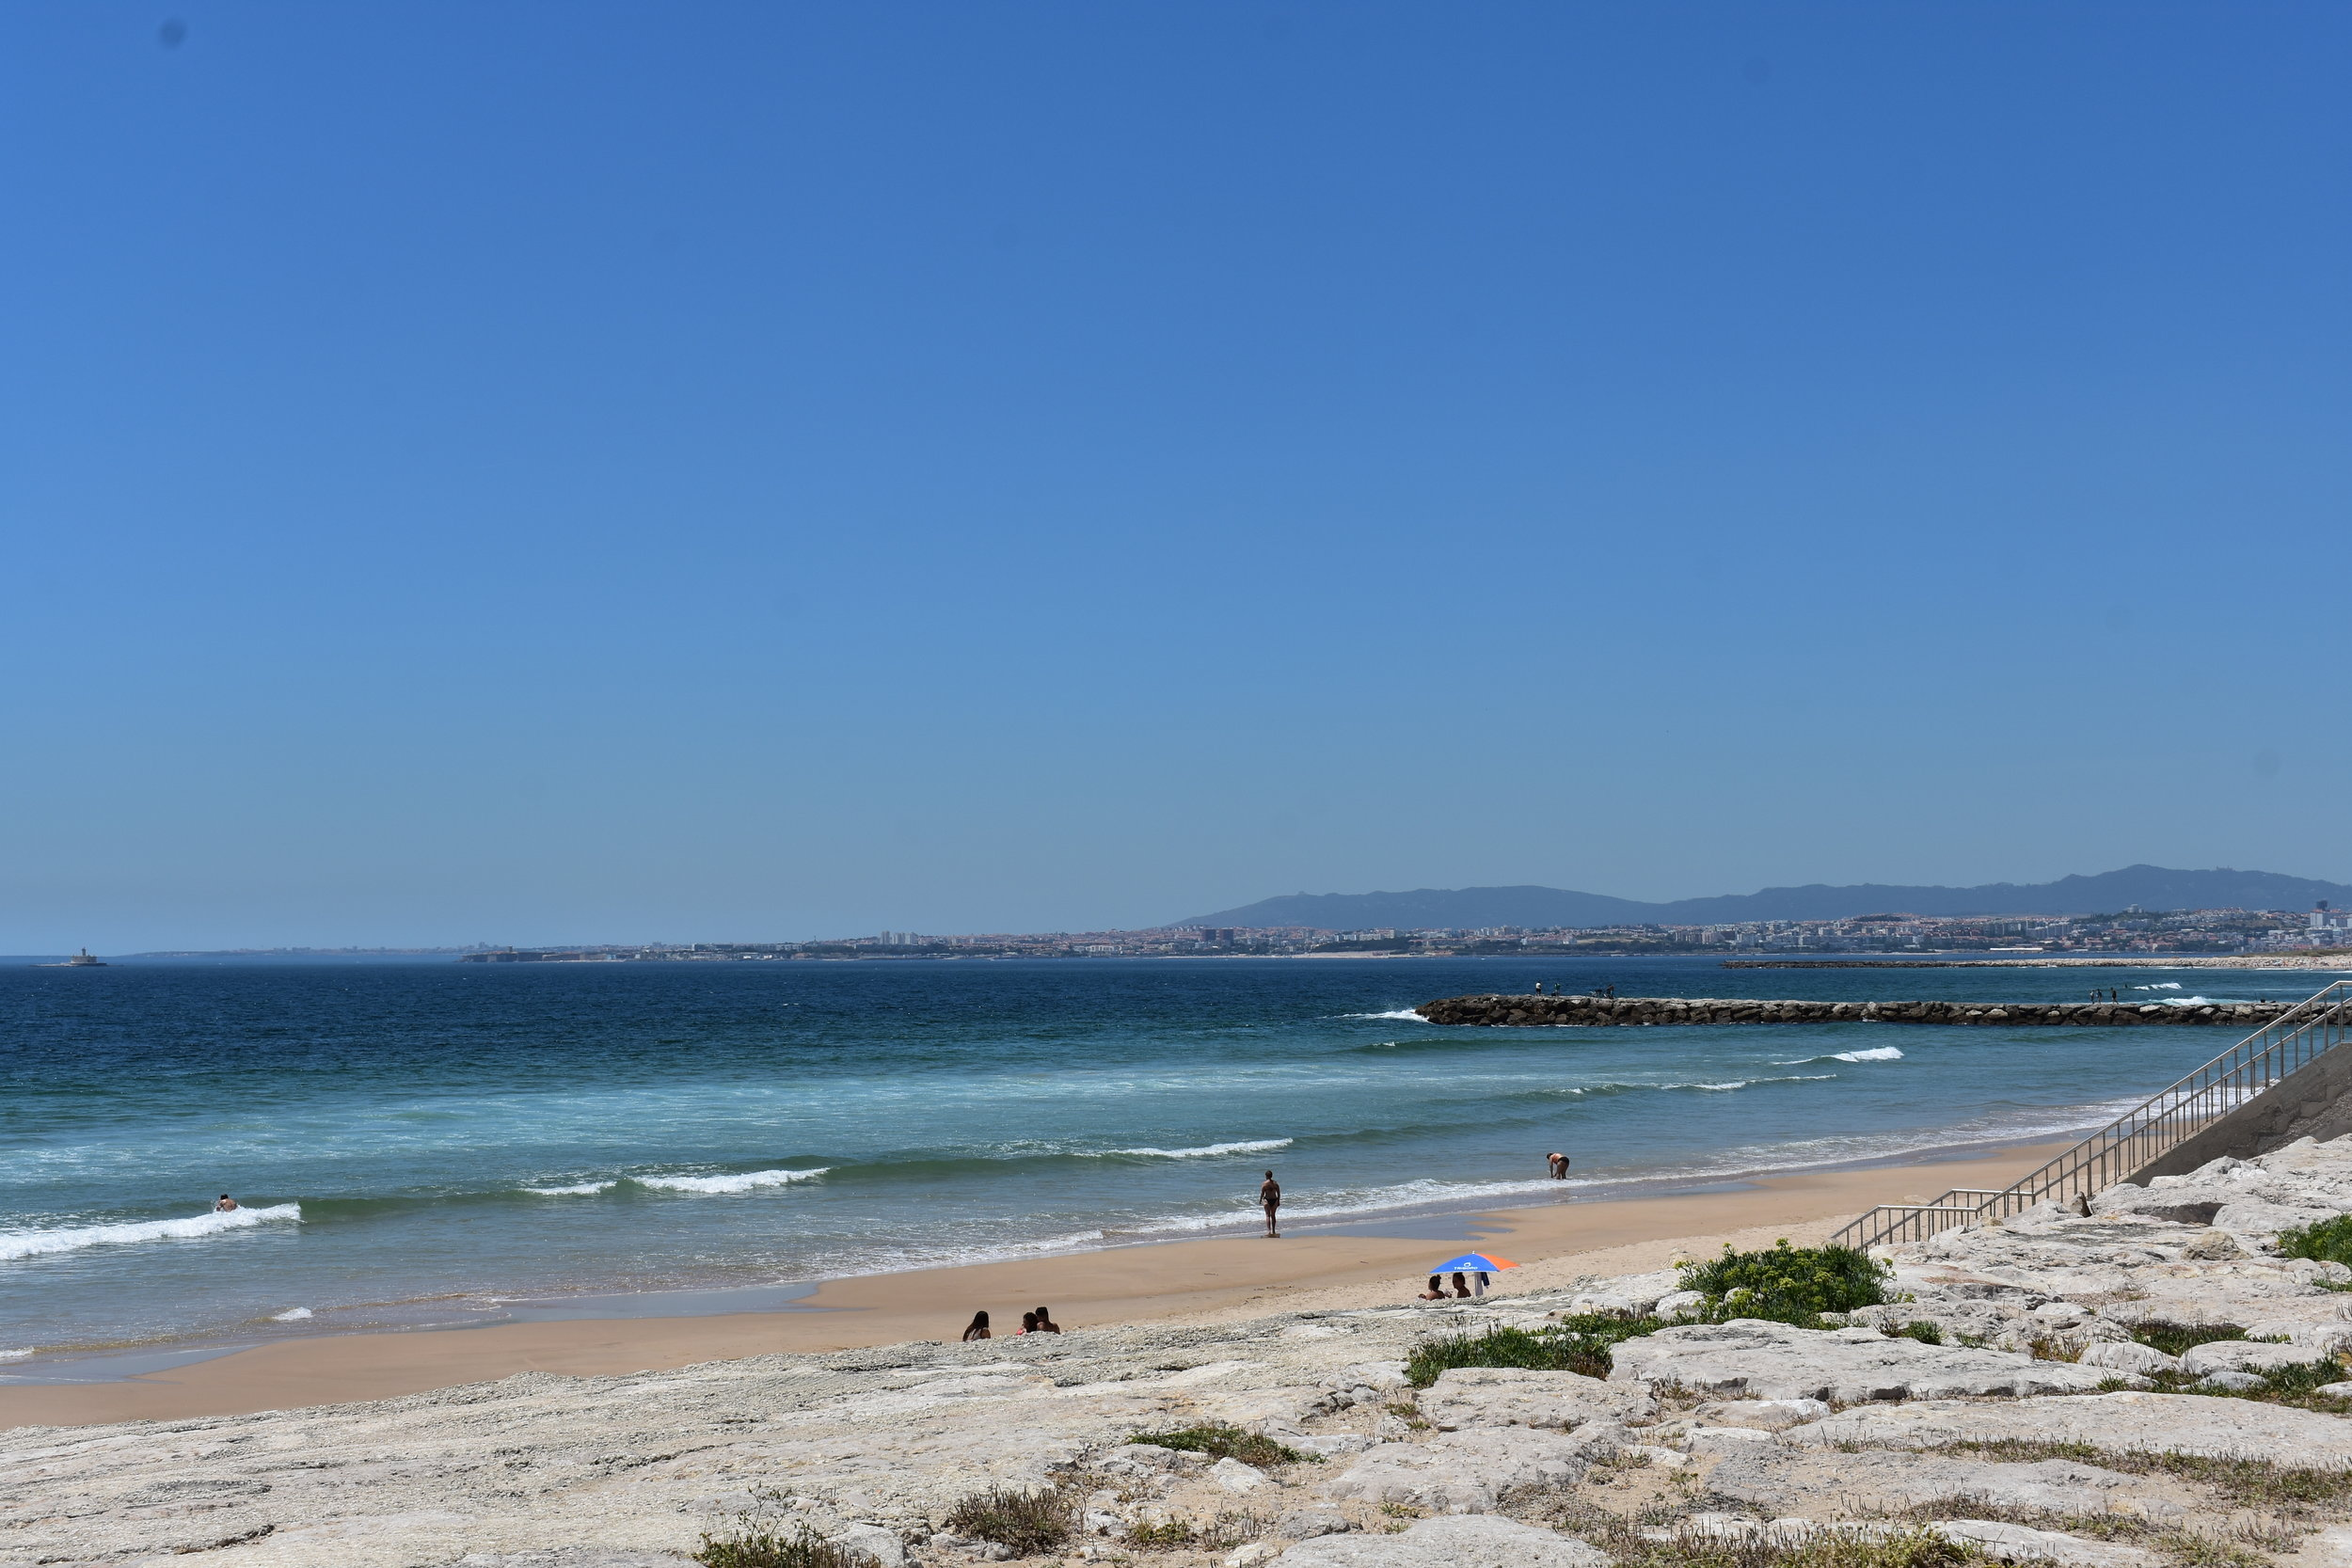 Dune nourishment on Portugal's beaches benefits the local community as well as recreation and the economy. Photo by Katrina Radach.